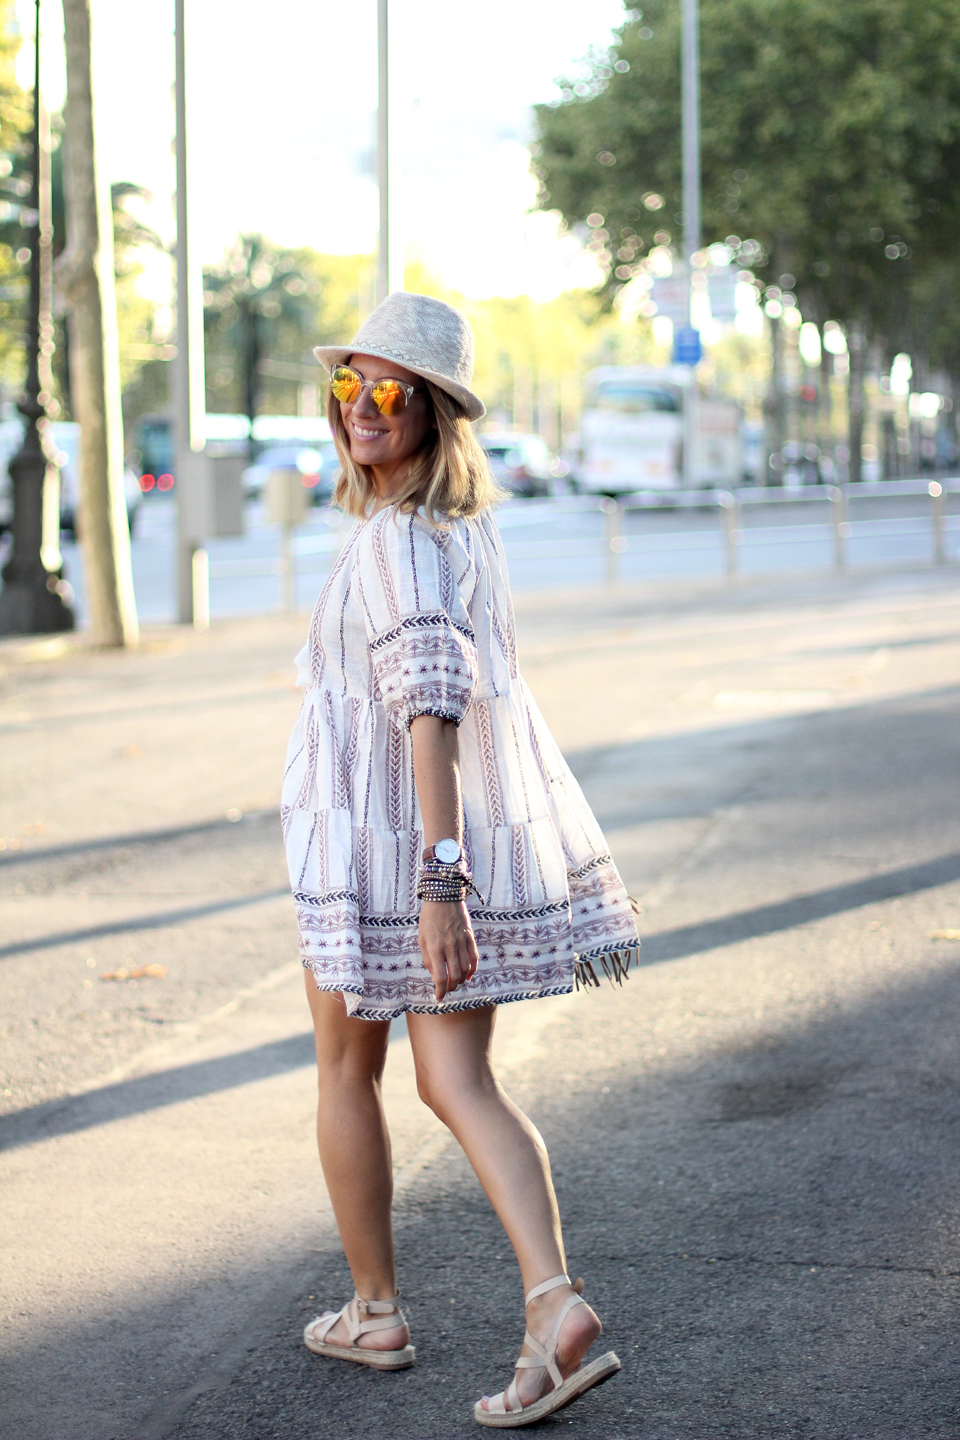 Embroidered-dress-blogger-barcelona (5)